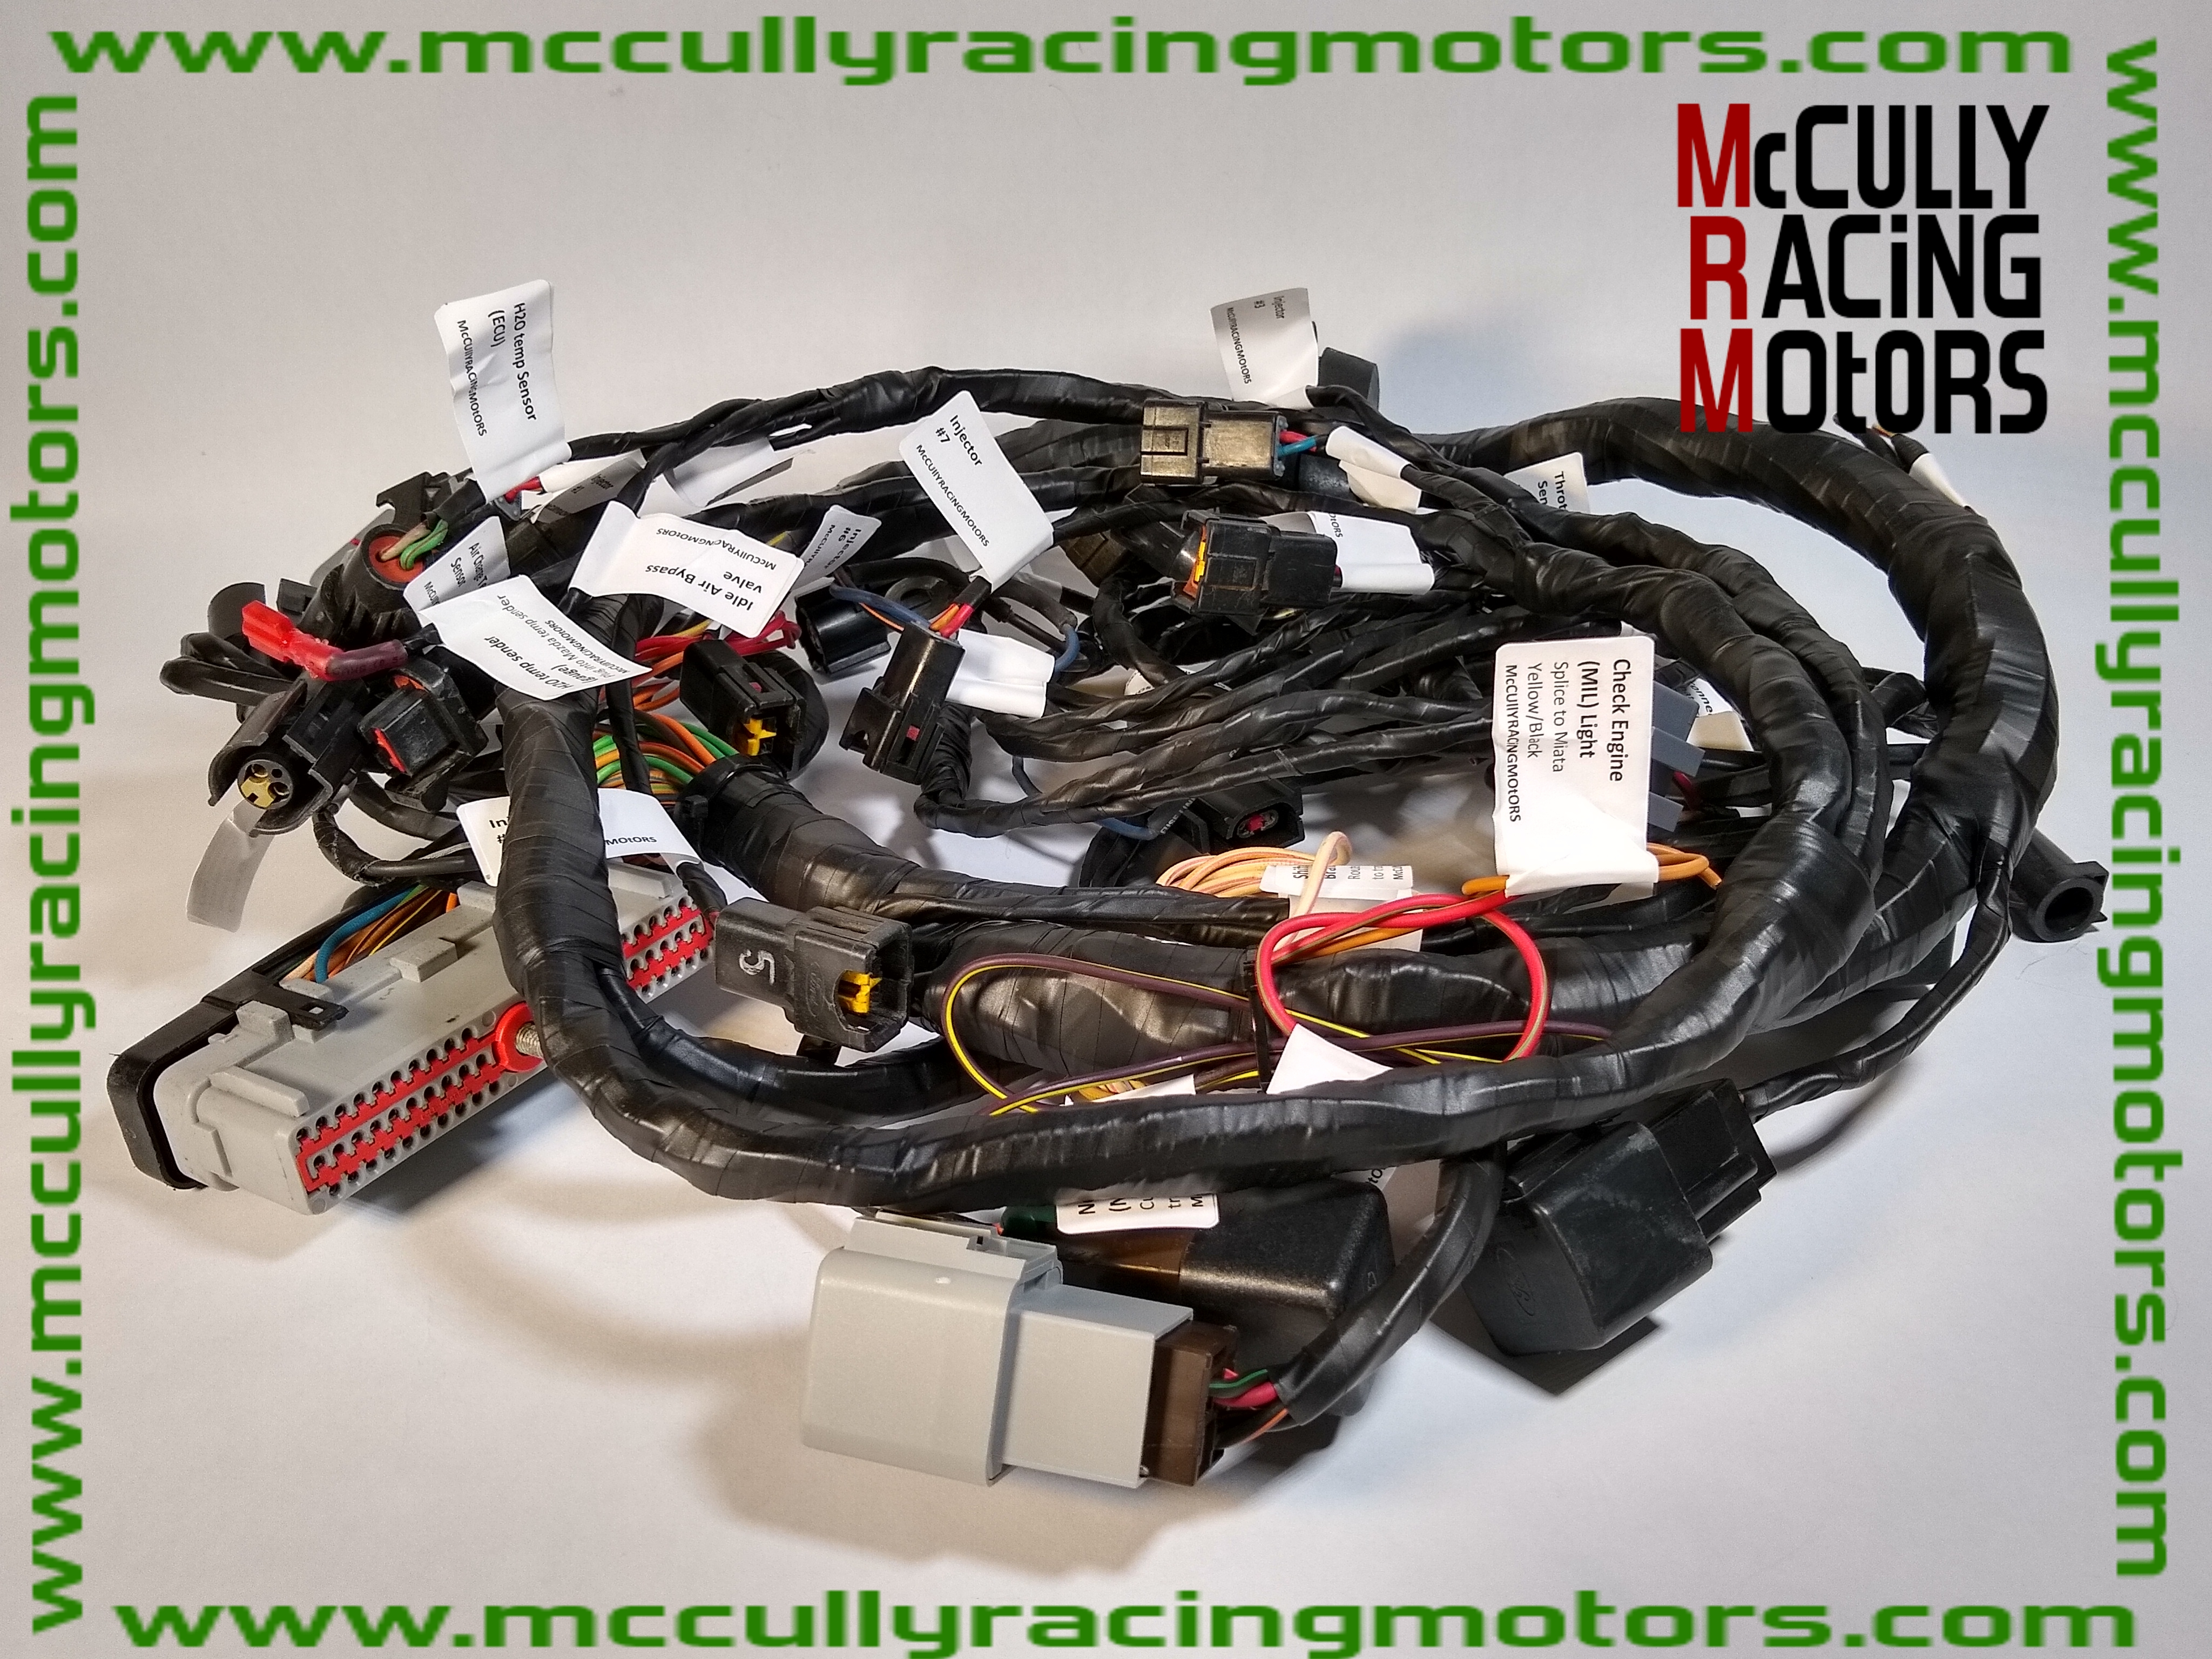 [DIAGRAM_09CH]  McCully Racing Motors- Your Wiring Woes are Over... | Lfx Engine Wiring Harness |  | McCully Racing Motors